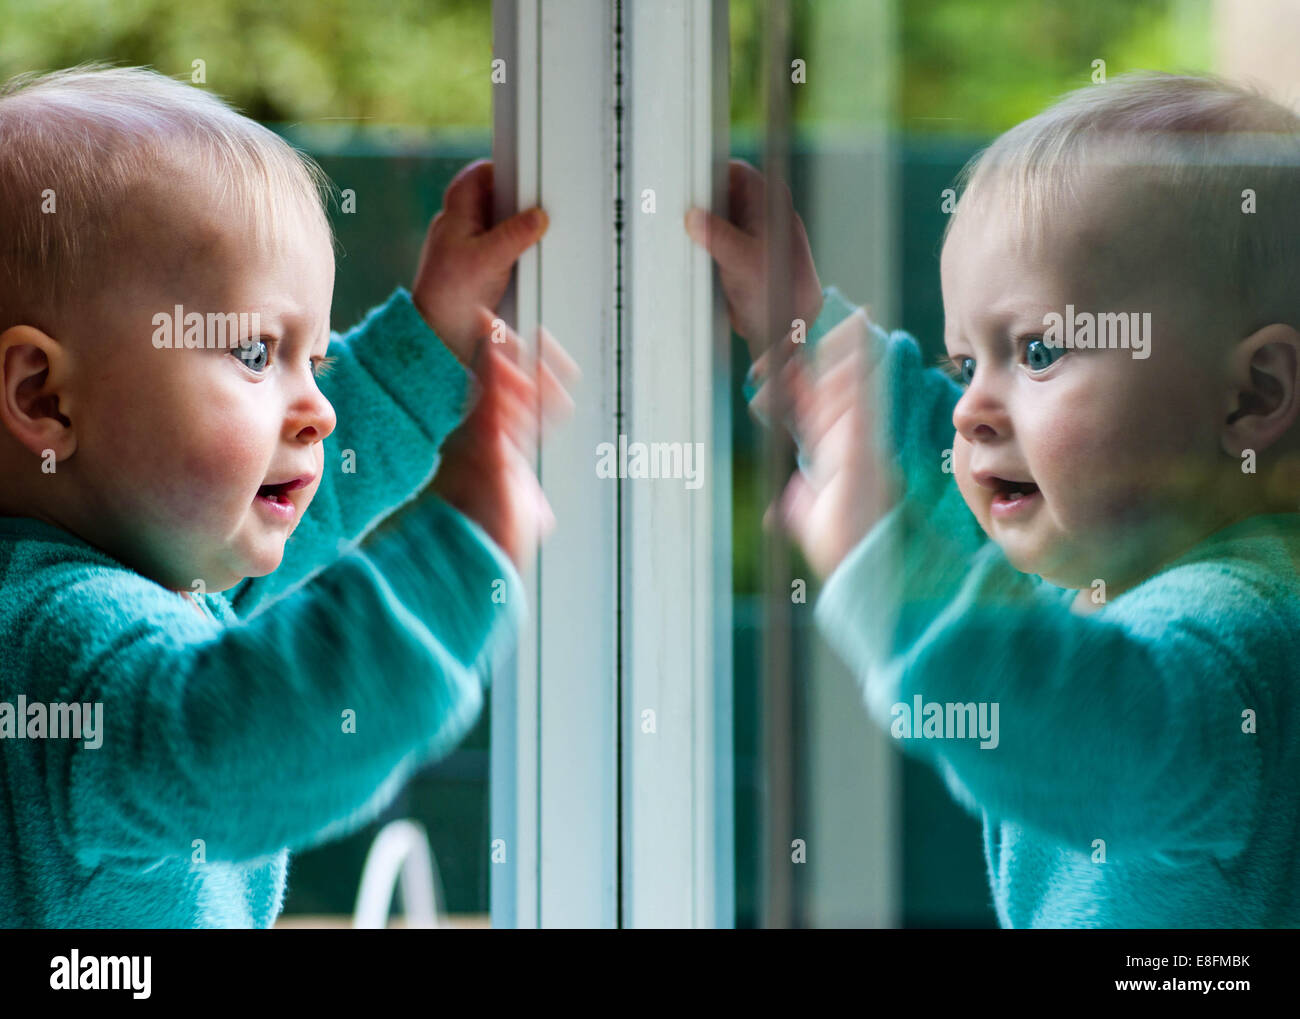 Baby boy playing with his reflection in window - Stock Image